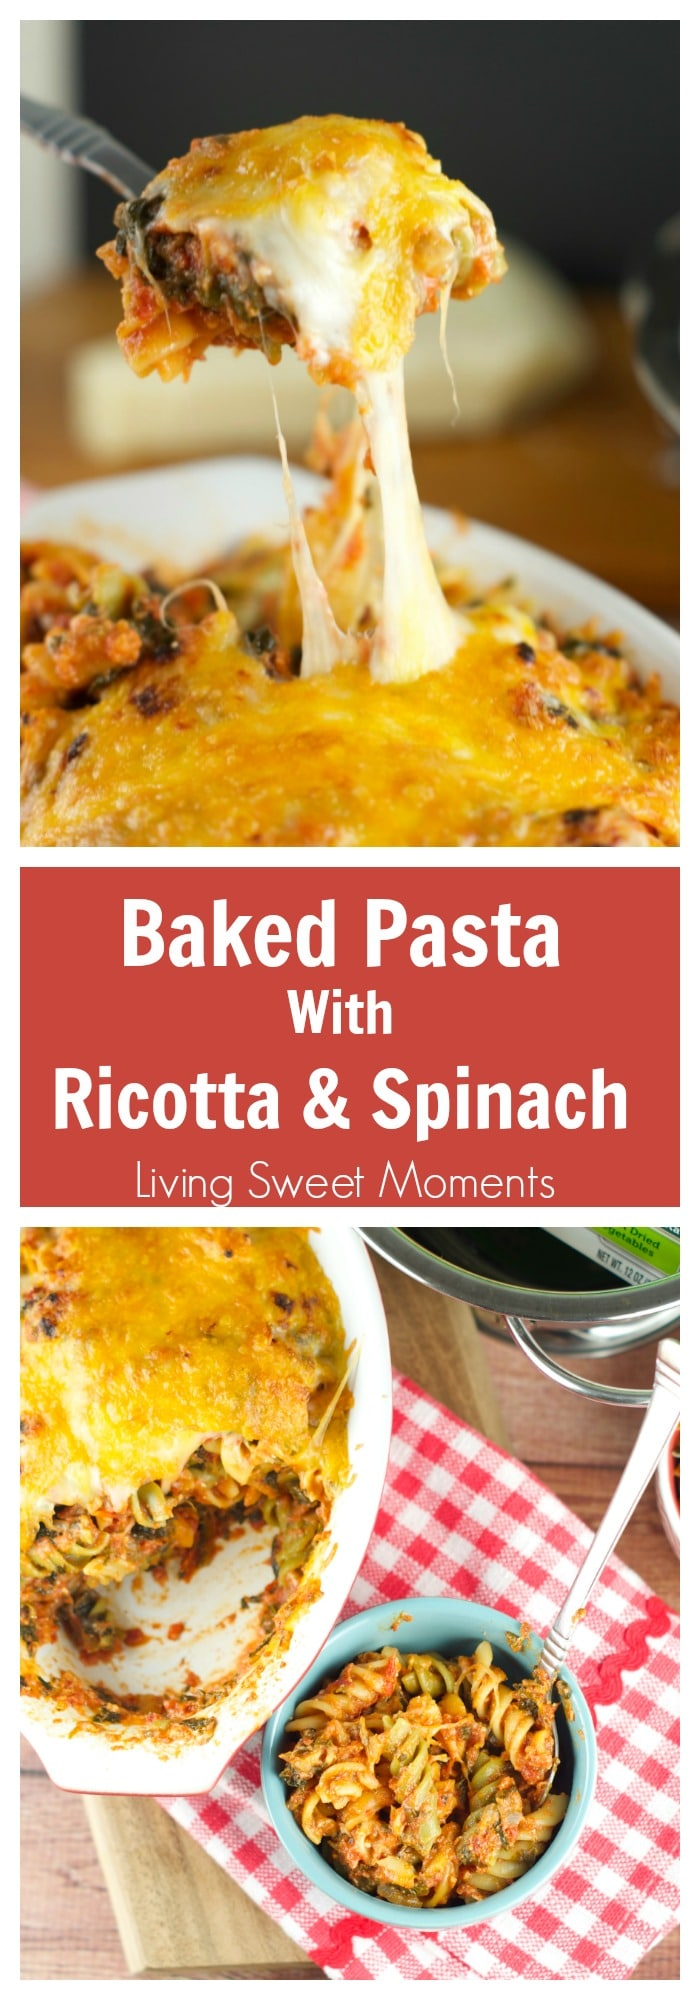 Baked Pasta With Ricotta And Spinach Recipe: have dinner on the table in 20 minutes or less! Delicious pasta is tossed with a homemade tomato ricotta sauce.